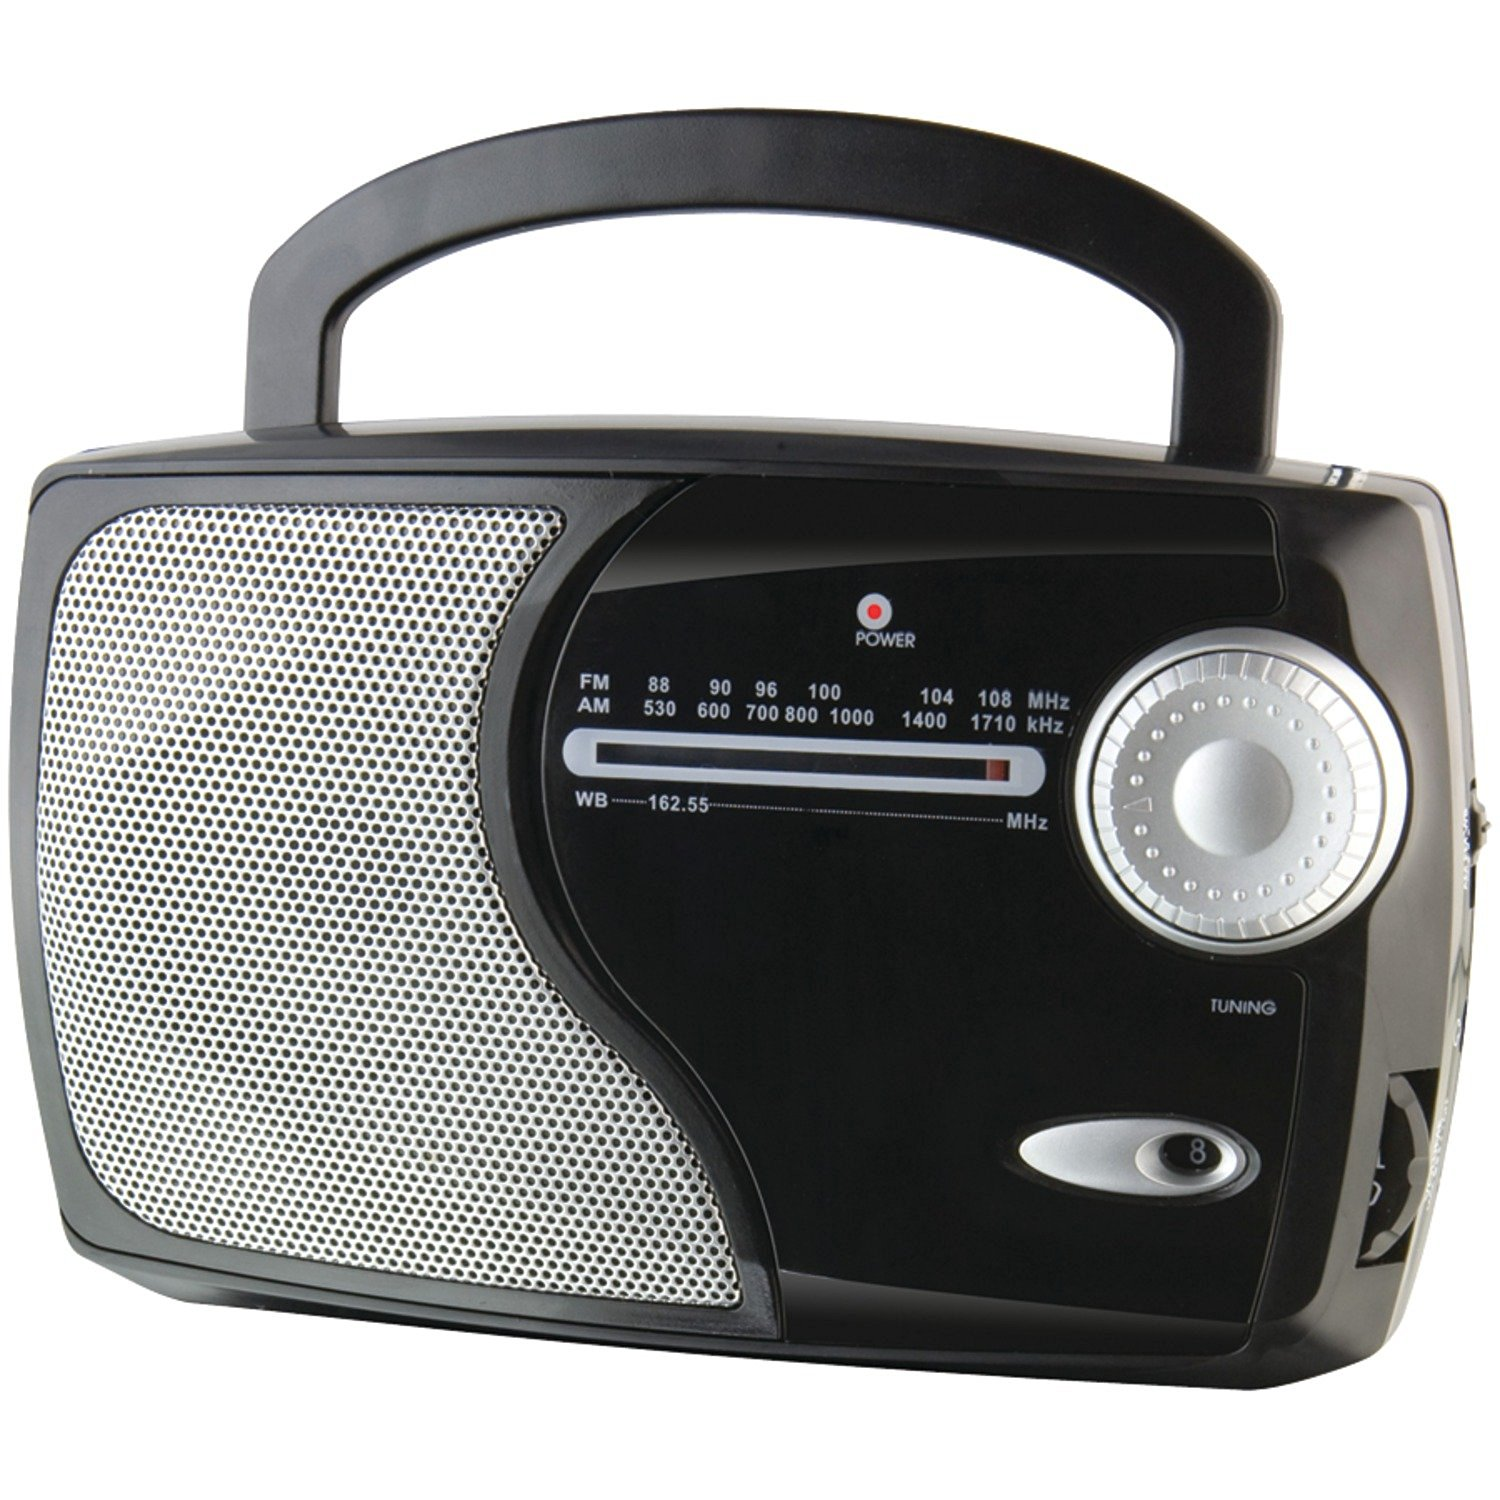 Best Emergency Radio Reviews | Authorized Boots